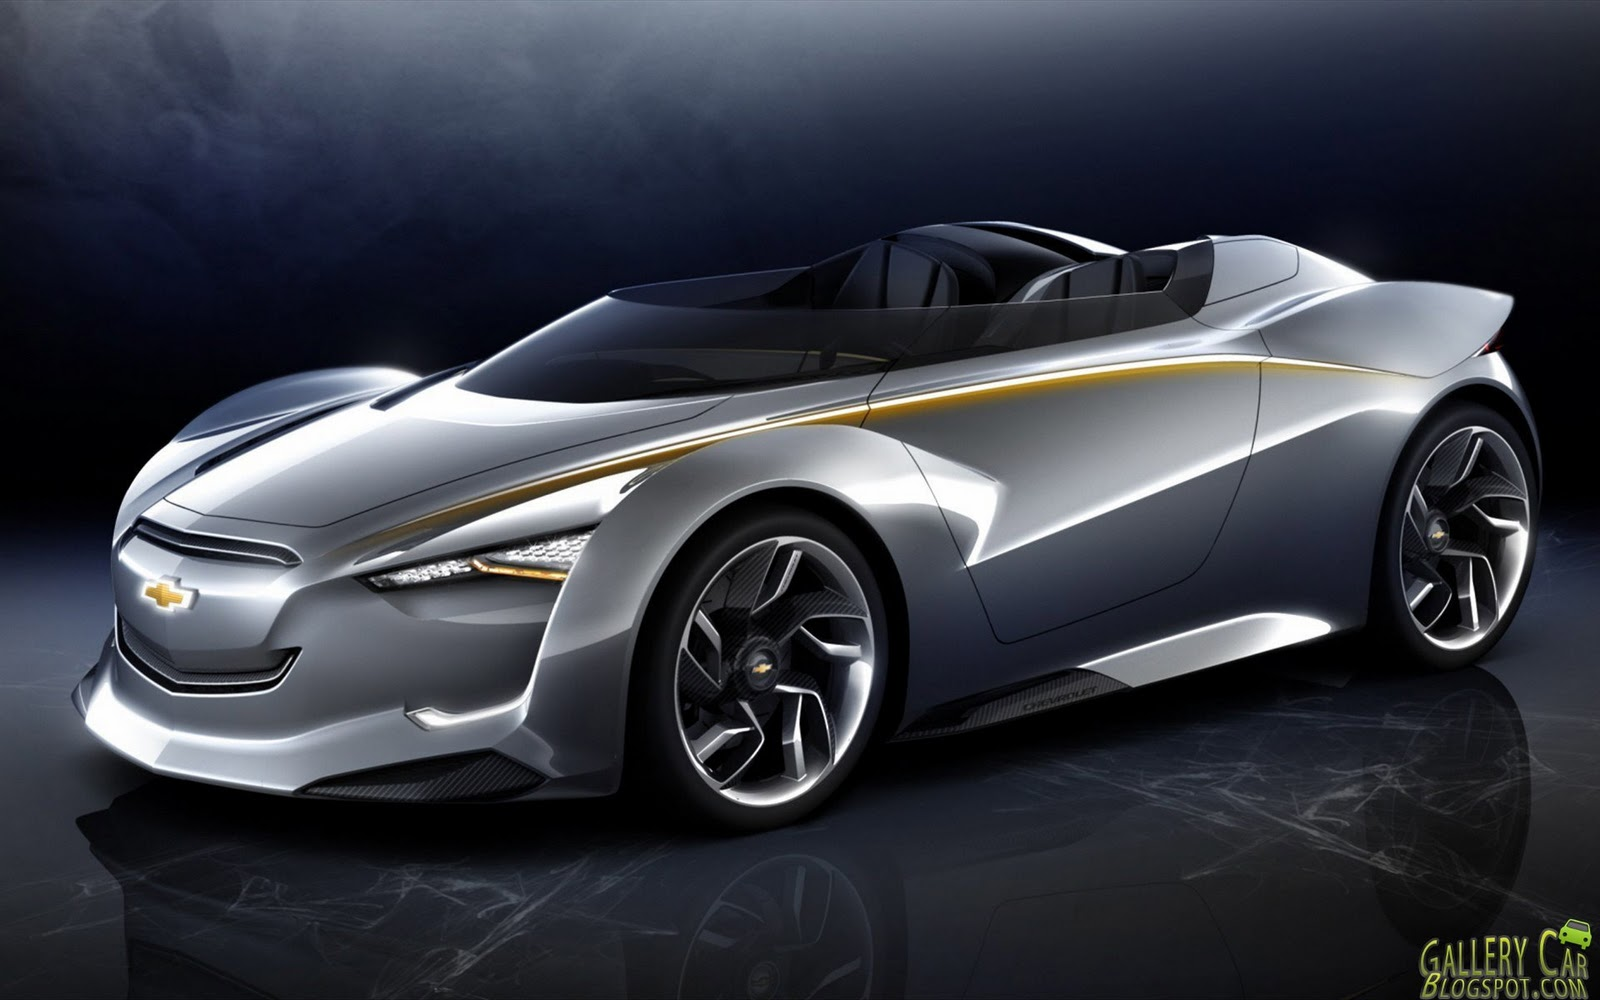 chevrolet mi ray roadster concept car wallpapers - Wallpaper chevrolet mi ray roadster concept car